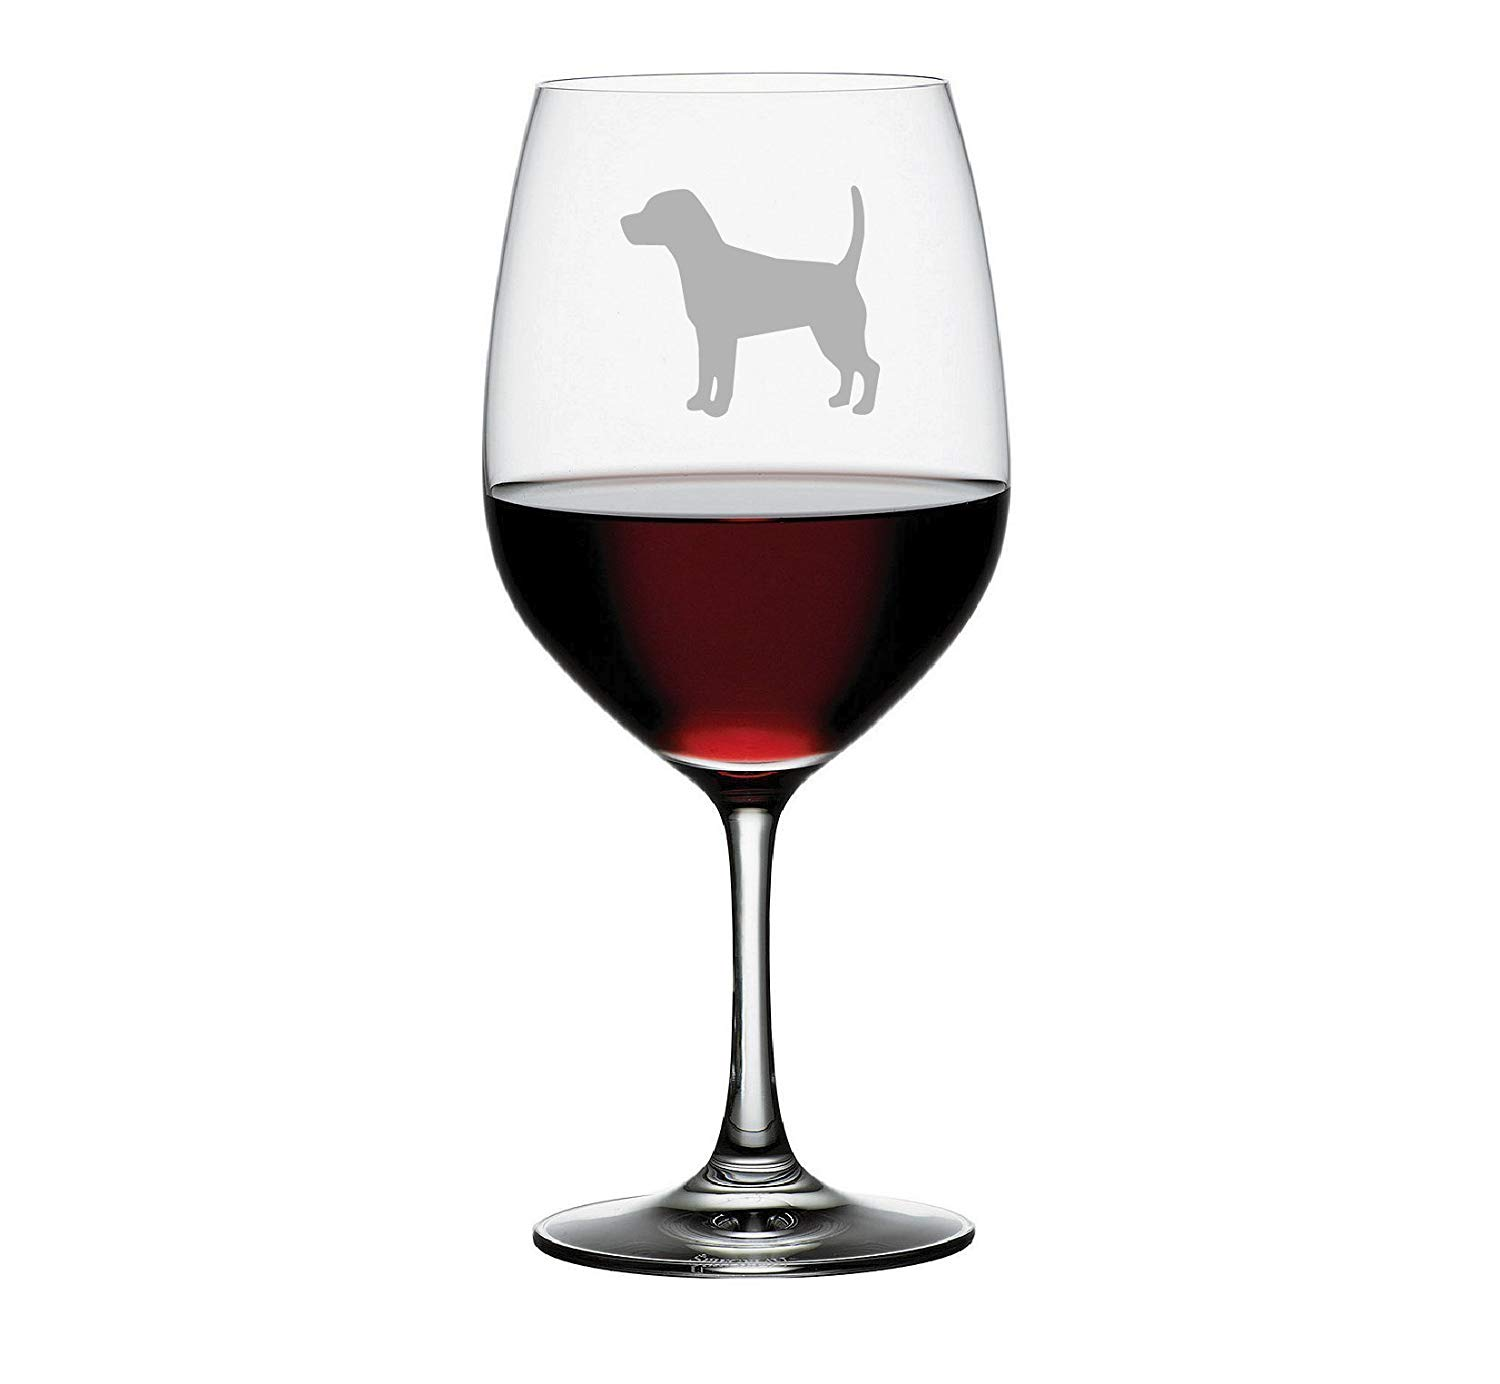 Beagle Etched Stemless Wine glass, Pint Glass, Stemmed wine Glass, Rocks glass, Pilsner or Nonic Pint glass